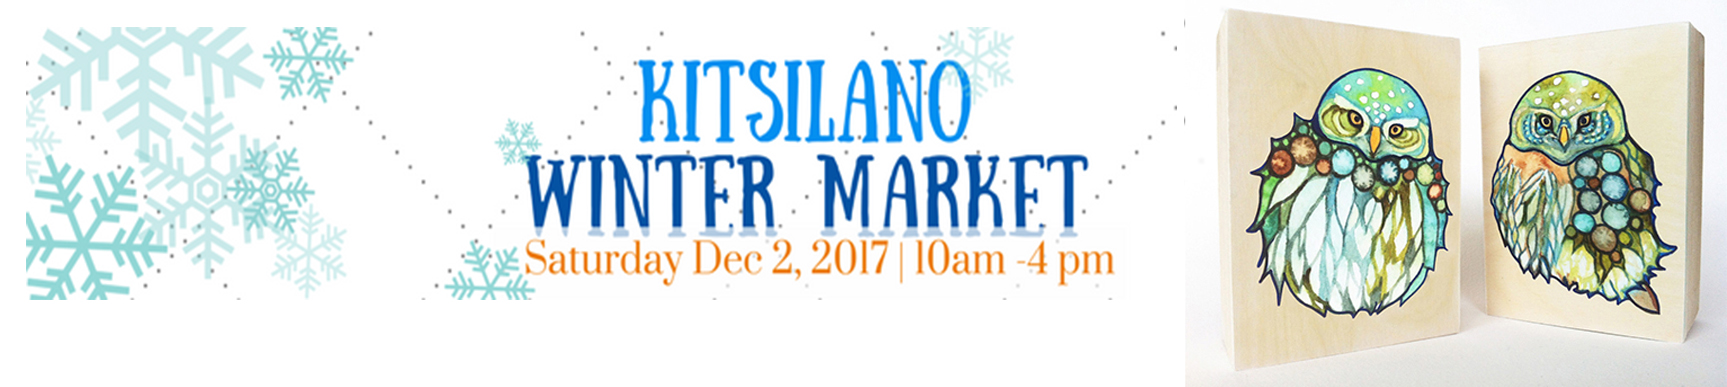 kits winter market 2017 .jpg